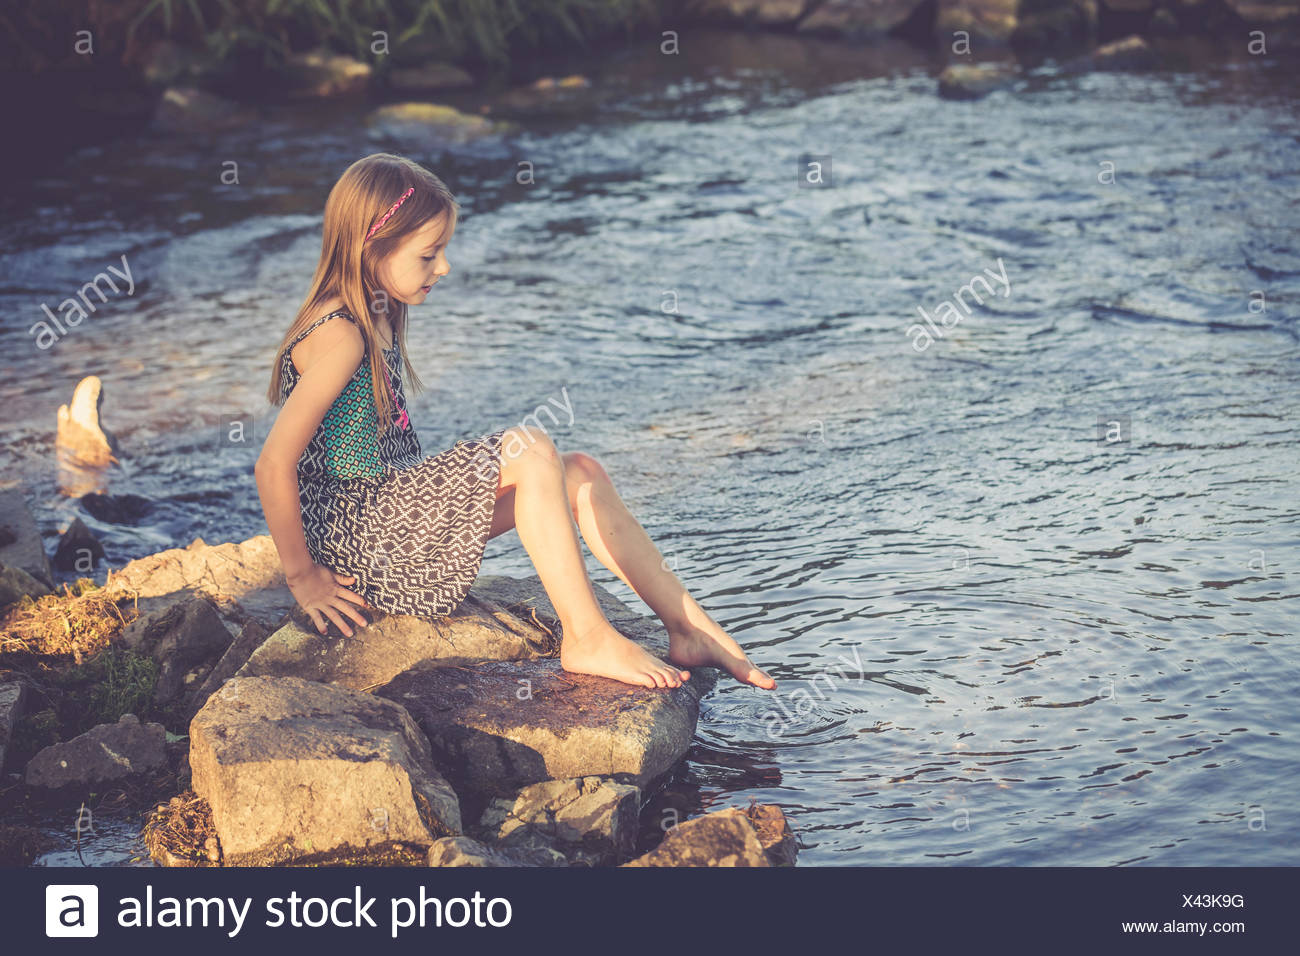 Girl sitting at waterside checking temperature of the water - Stock Image